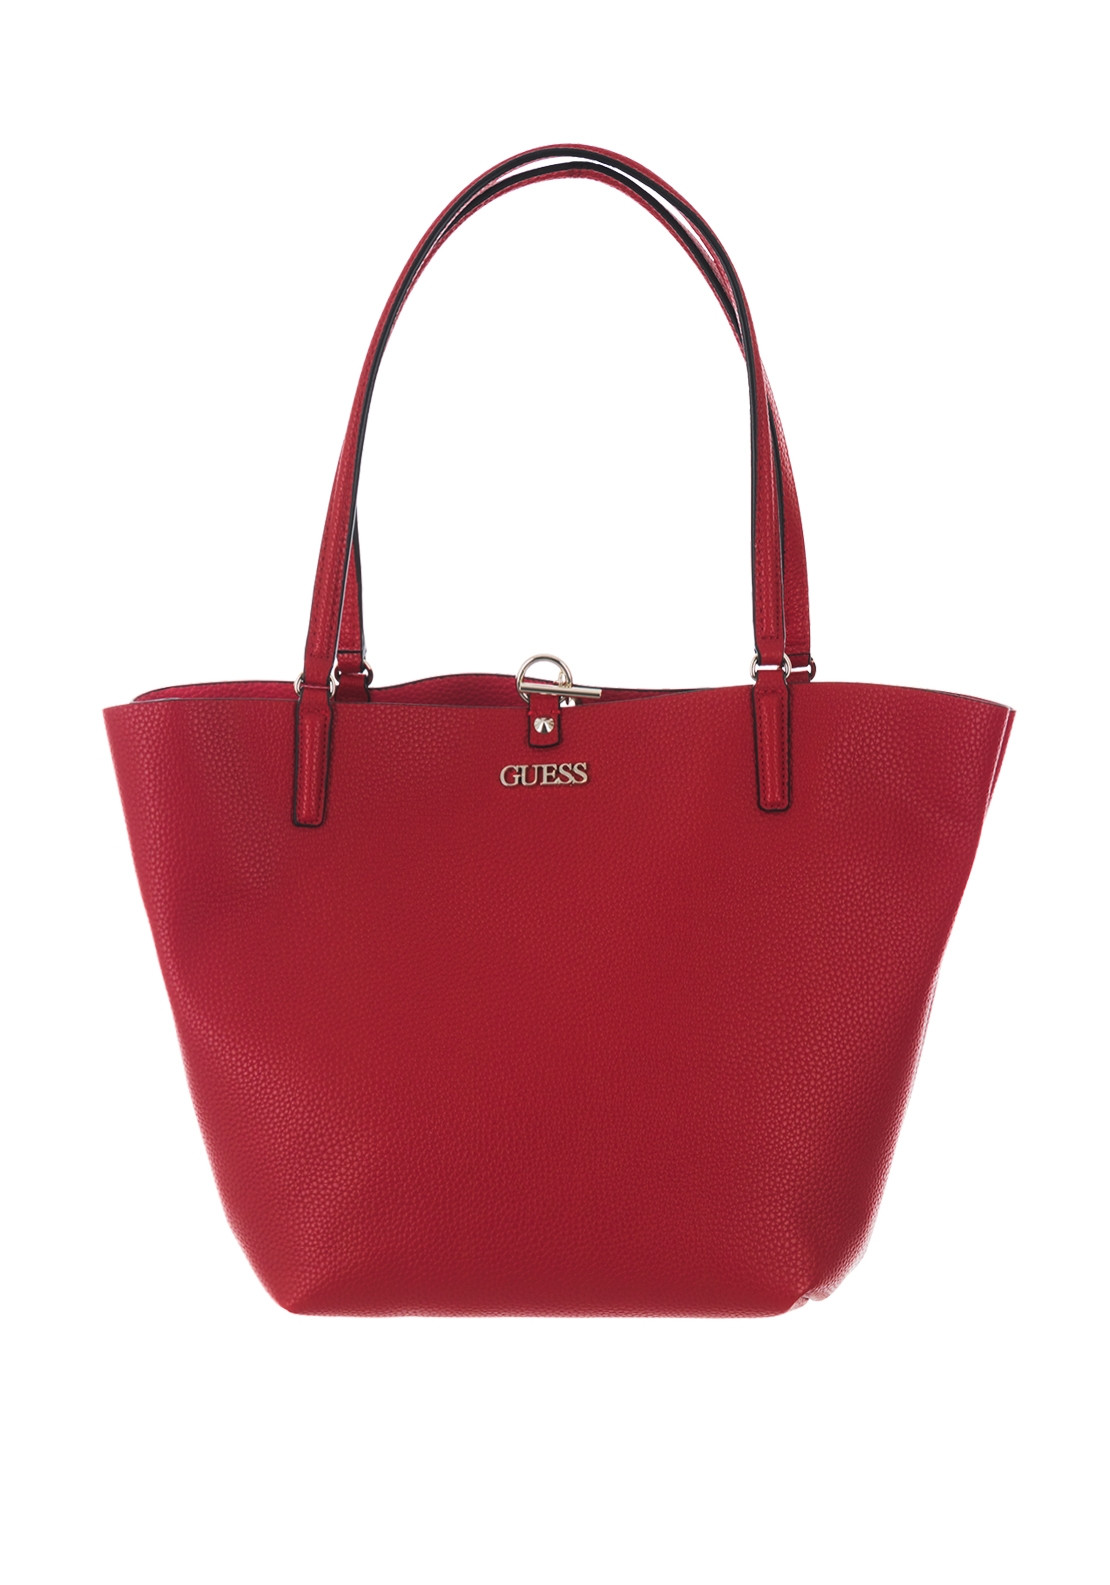 adcccb26 Guess Alby Tote Bag with Shoulder Bag, Lipstick | McElhinneys